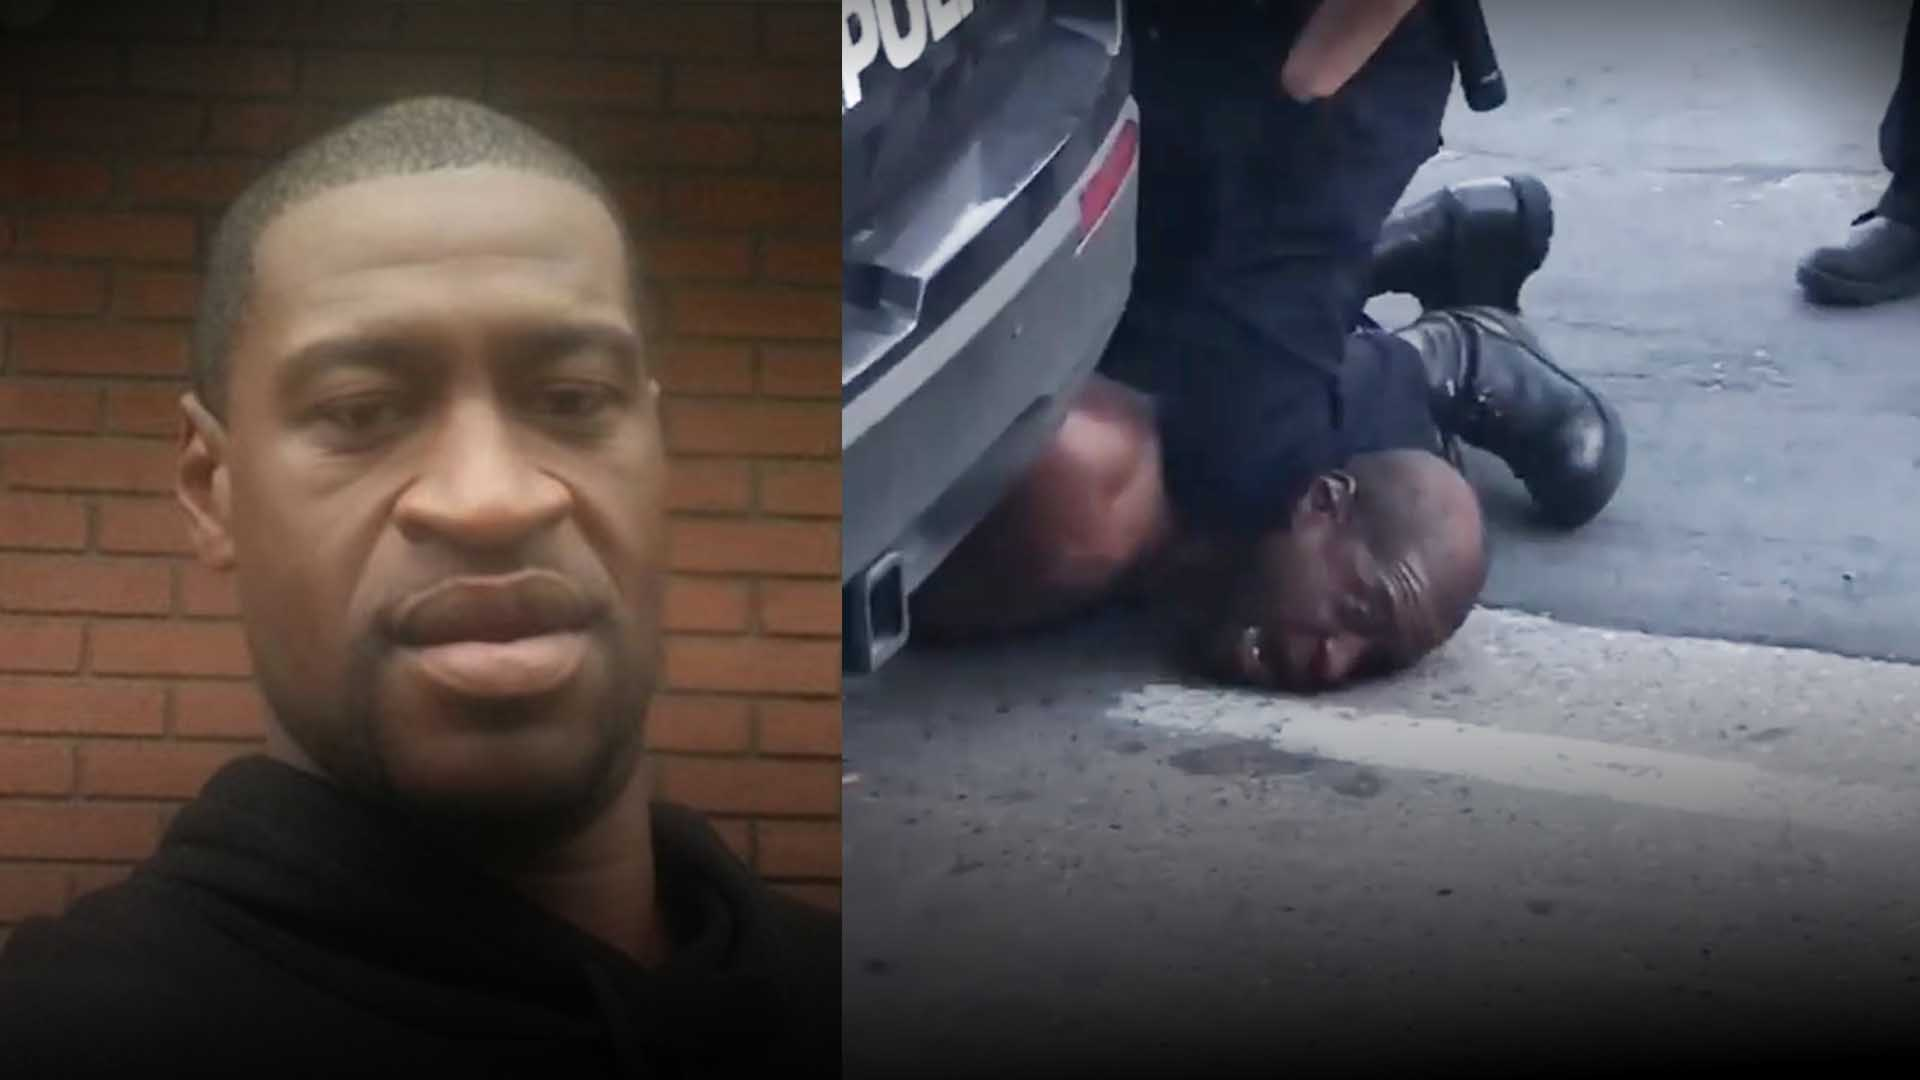 'I Can't Breathe!' Man Dies After Police Kneel on His Neck for 8 Minutes